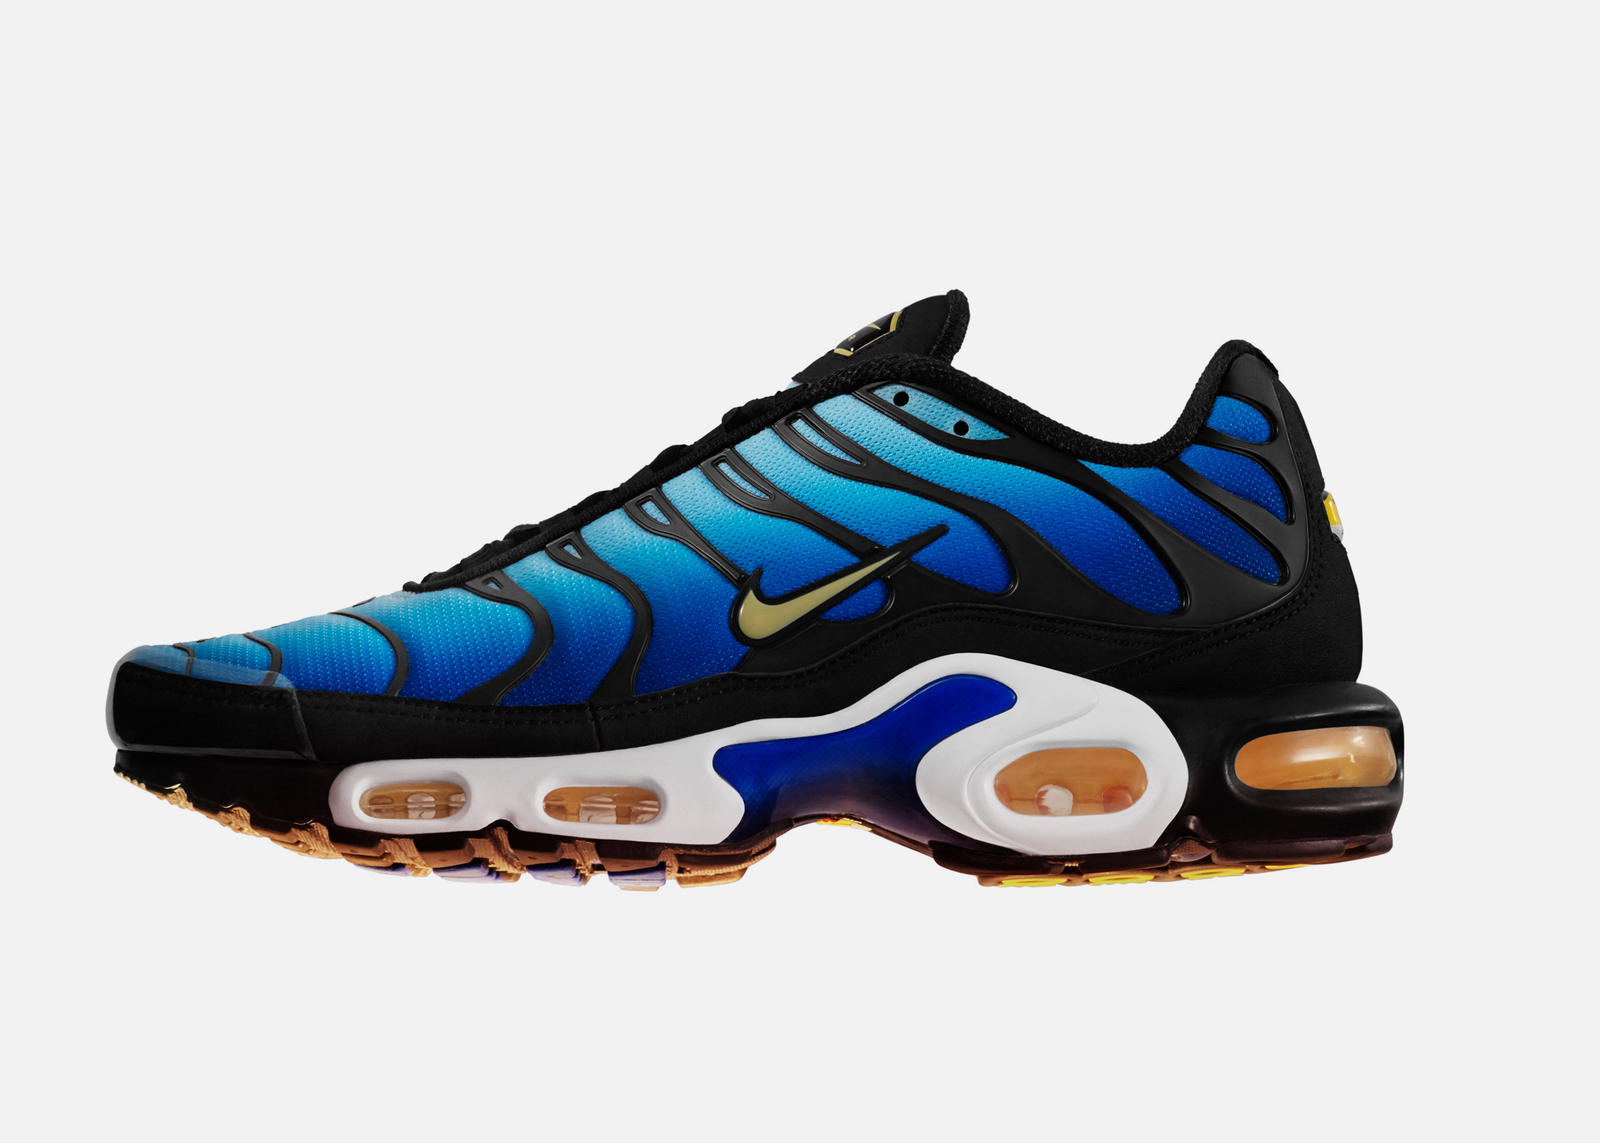 d288c1c8f2a63 The Untold Story of the Nike Air Max Plus 20